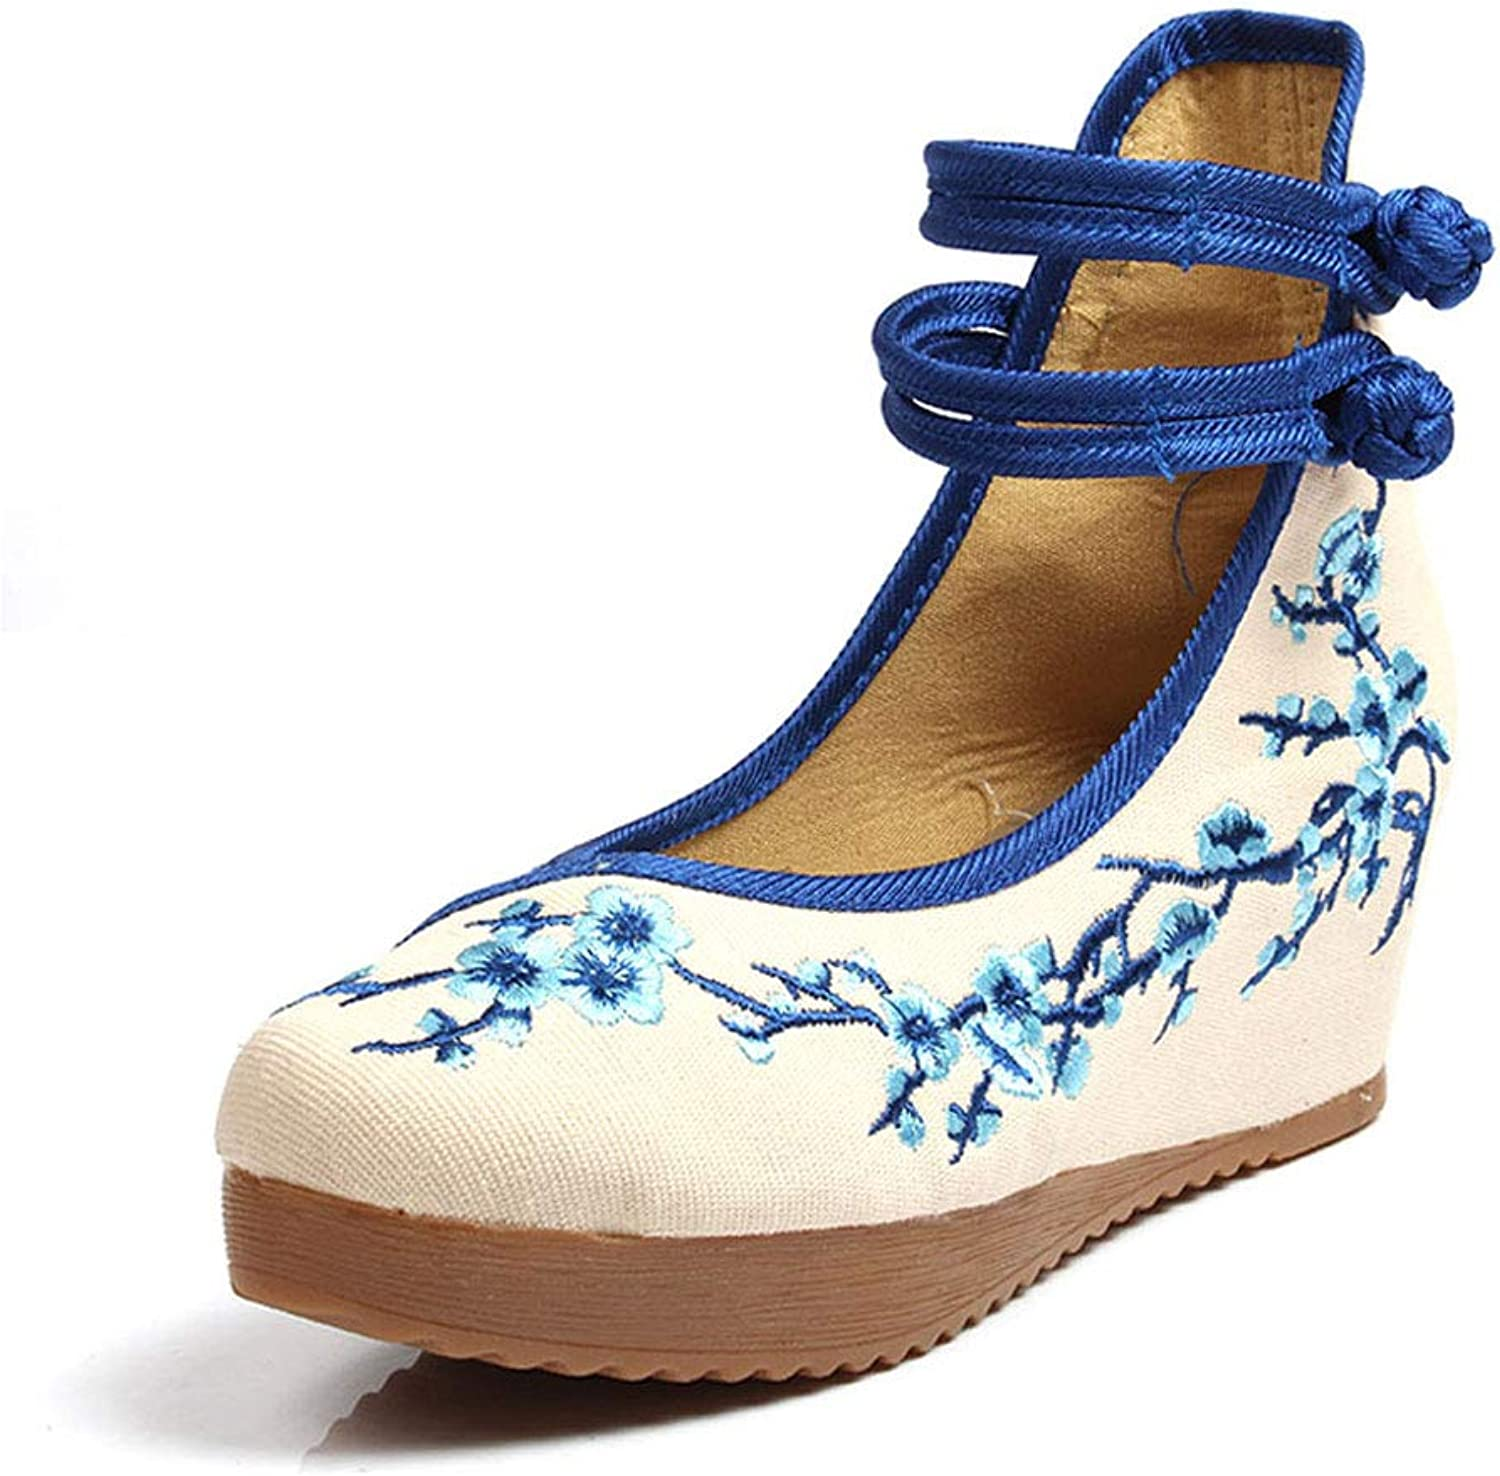 Women's High Heeled Embroidered shoes Elegant Cloth shoes Breathable Casual Ballet shoes Fashion Women's shoes (color   bluee, Size   35)